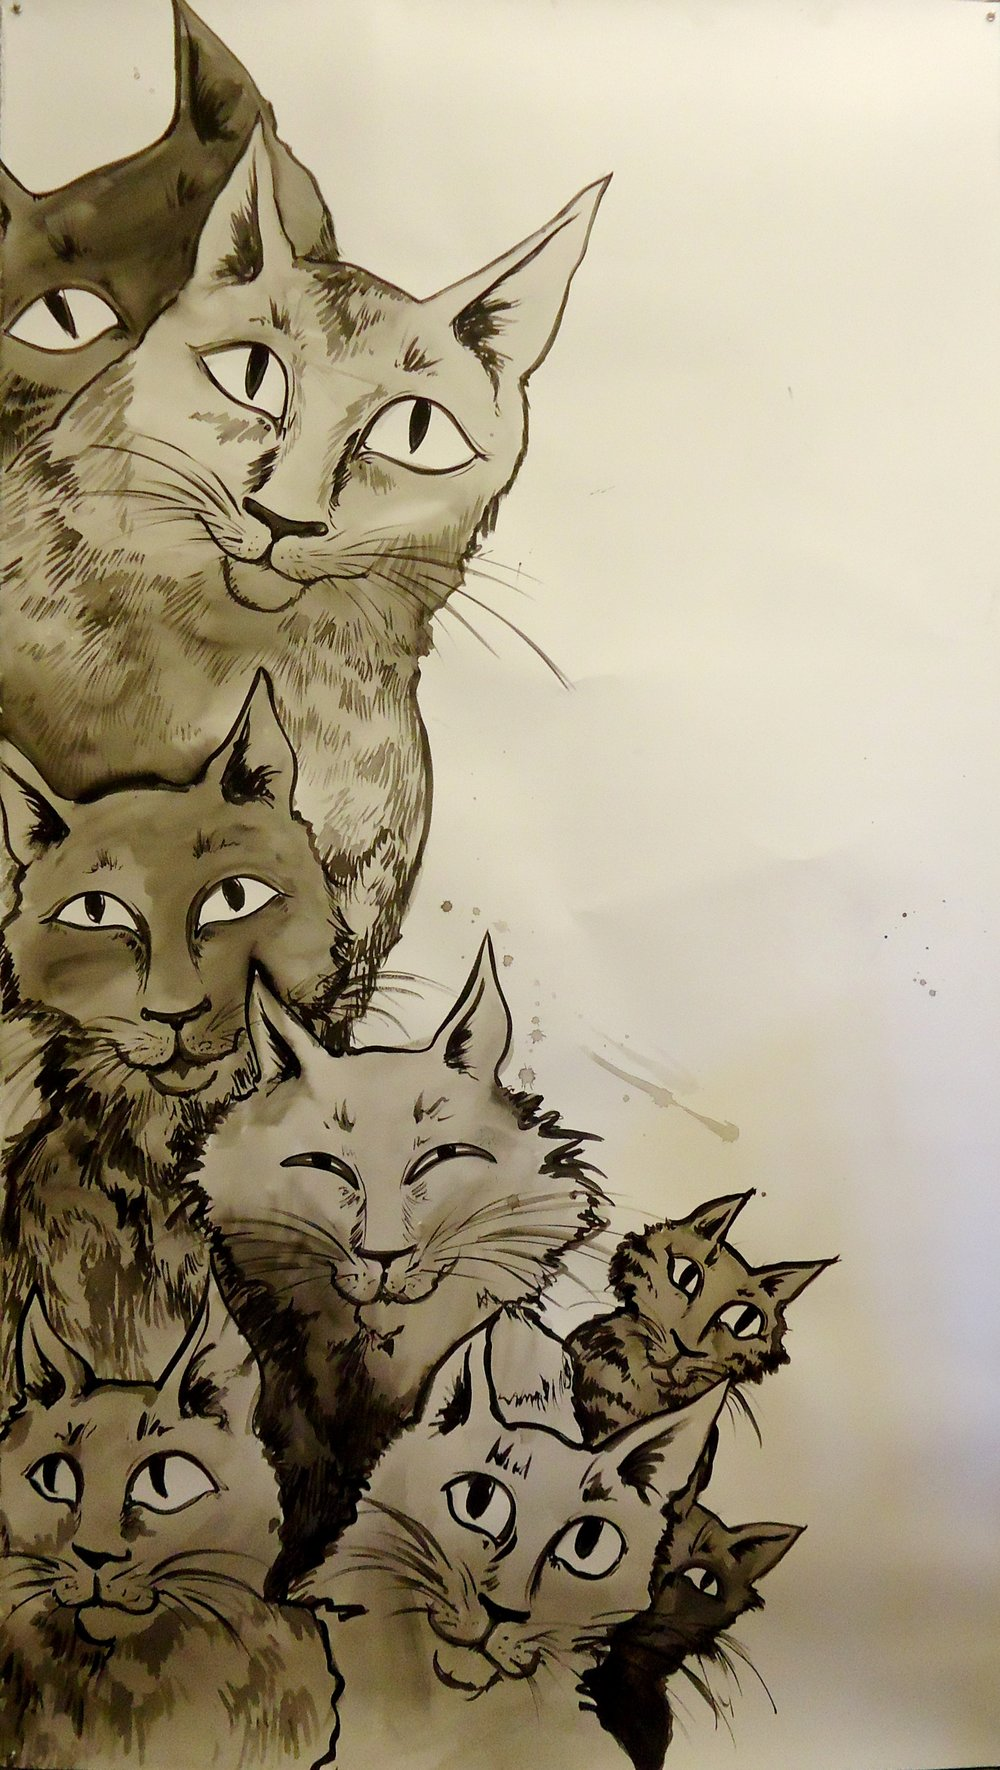 "I woke to plaintive meowing in the room, and a vague, nagging concern that I may be out of canned tuna. Ink on paper. 42.5"" x 73.5"""